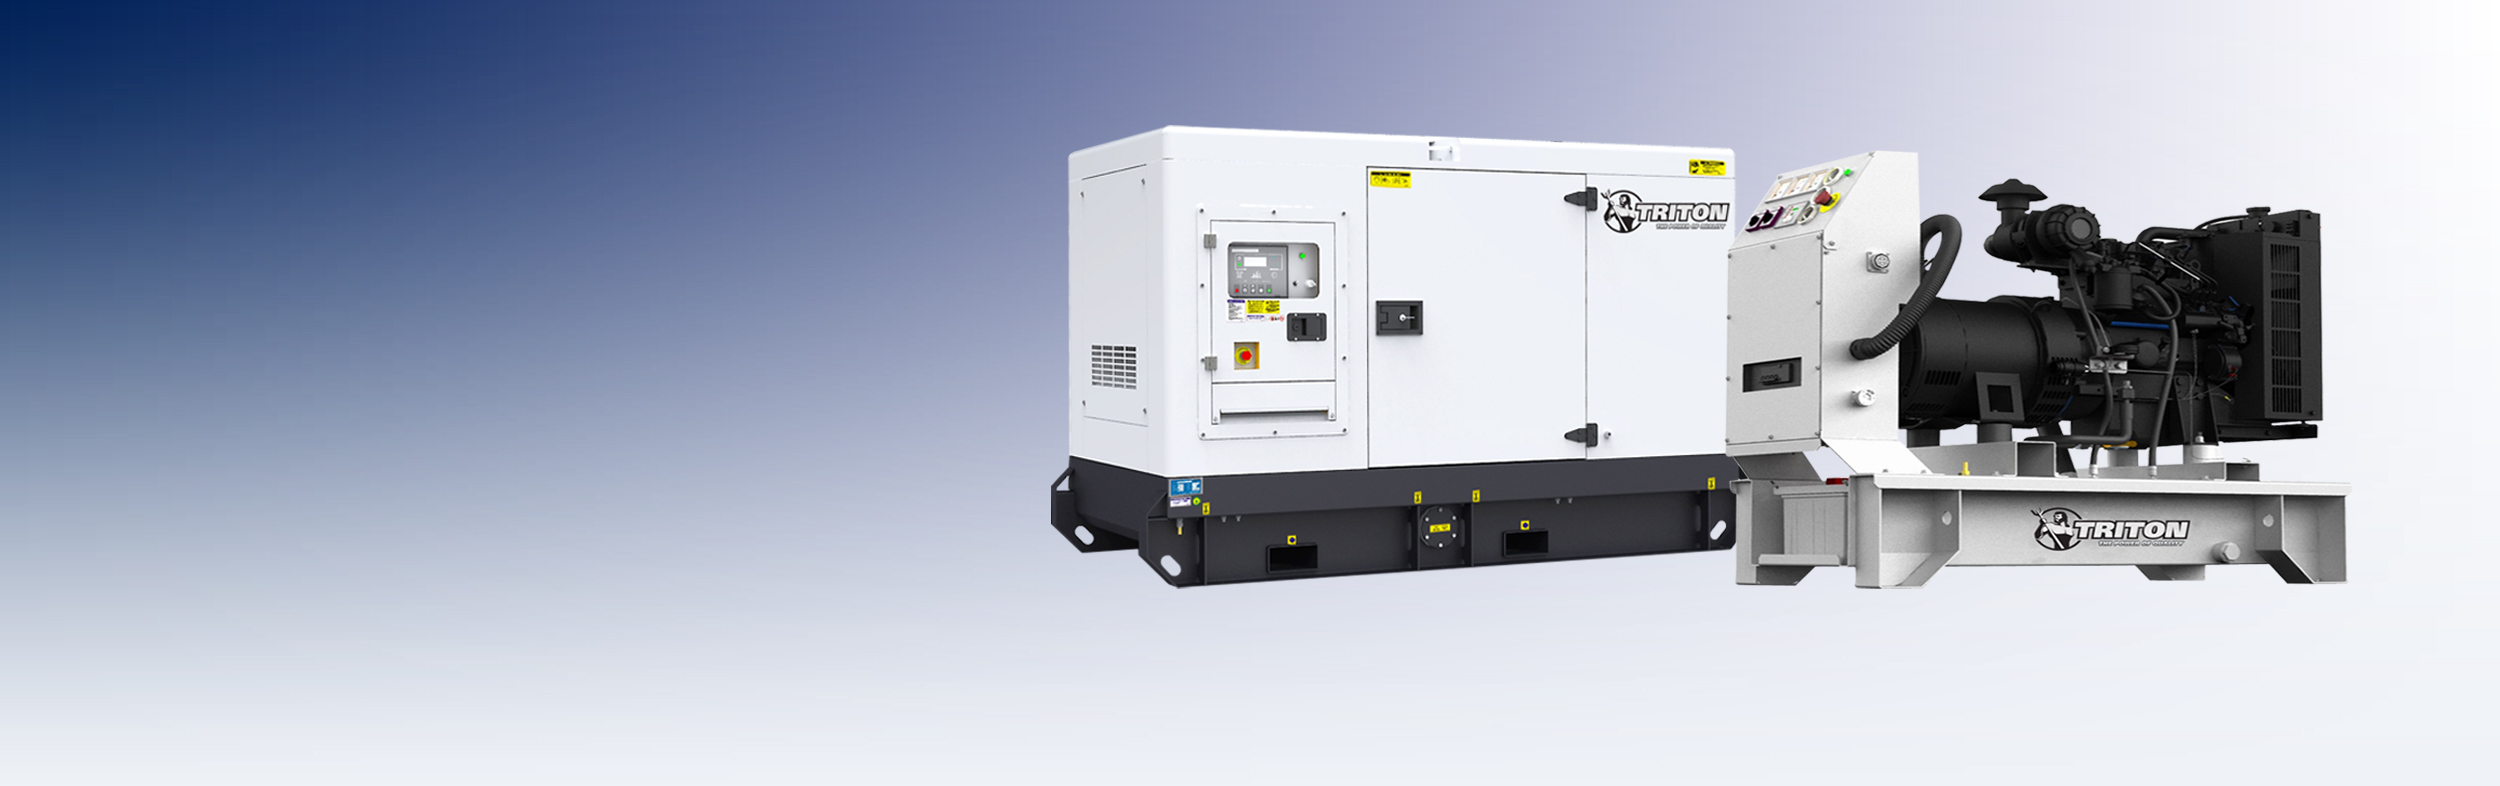 Kw Natural Gas Generator For Sale